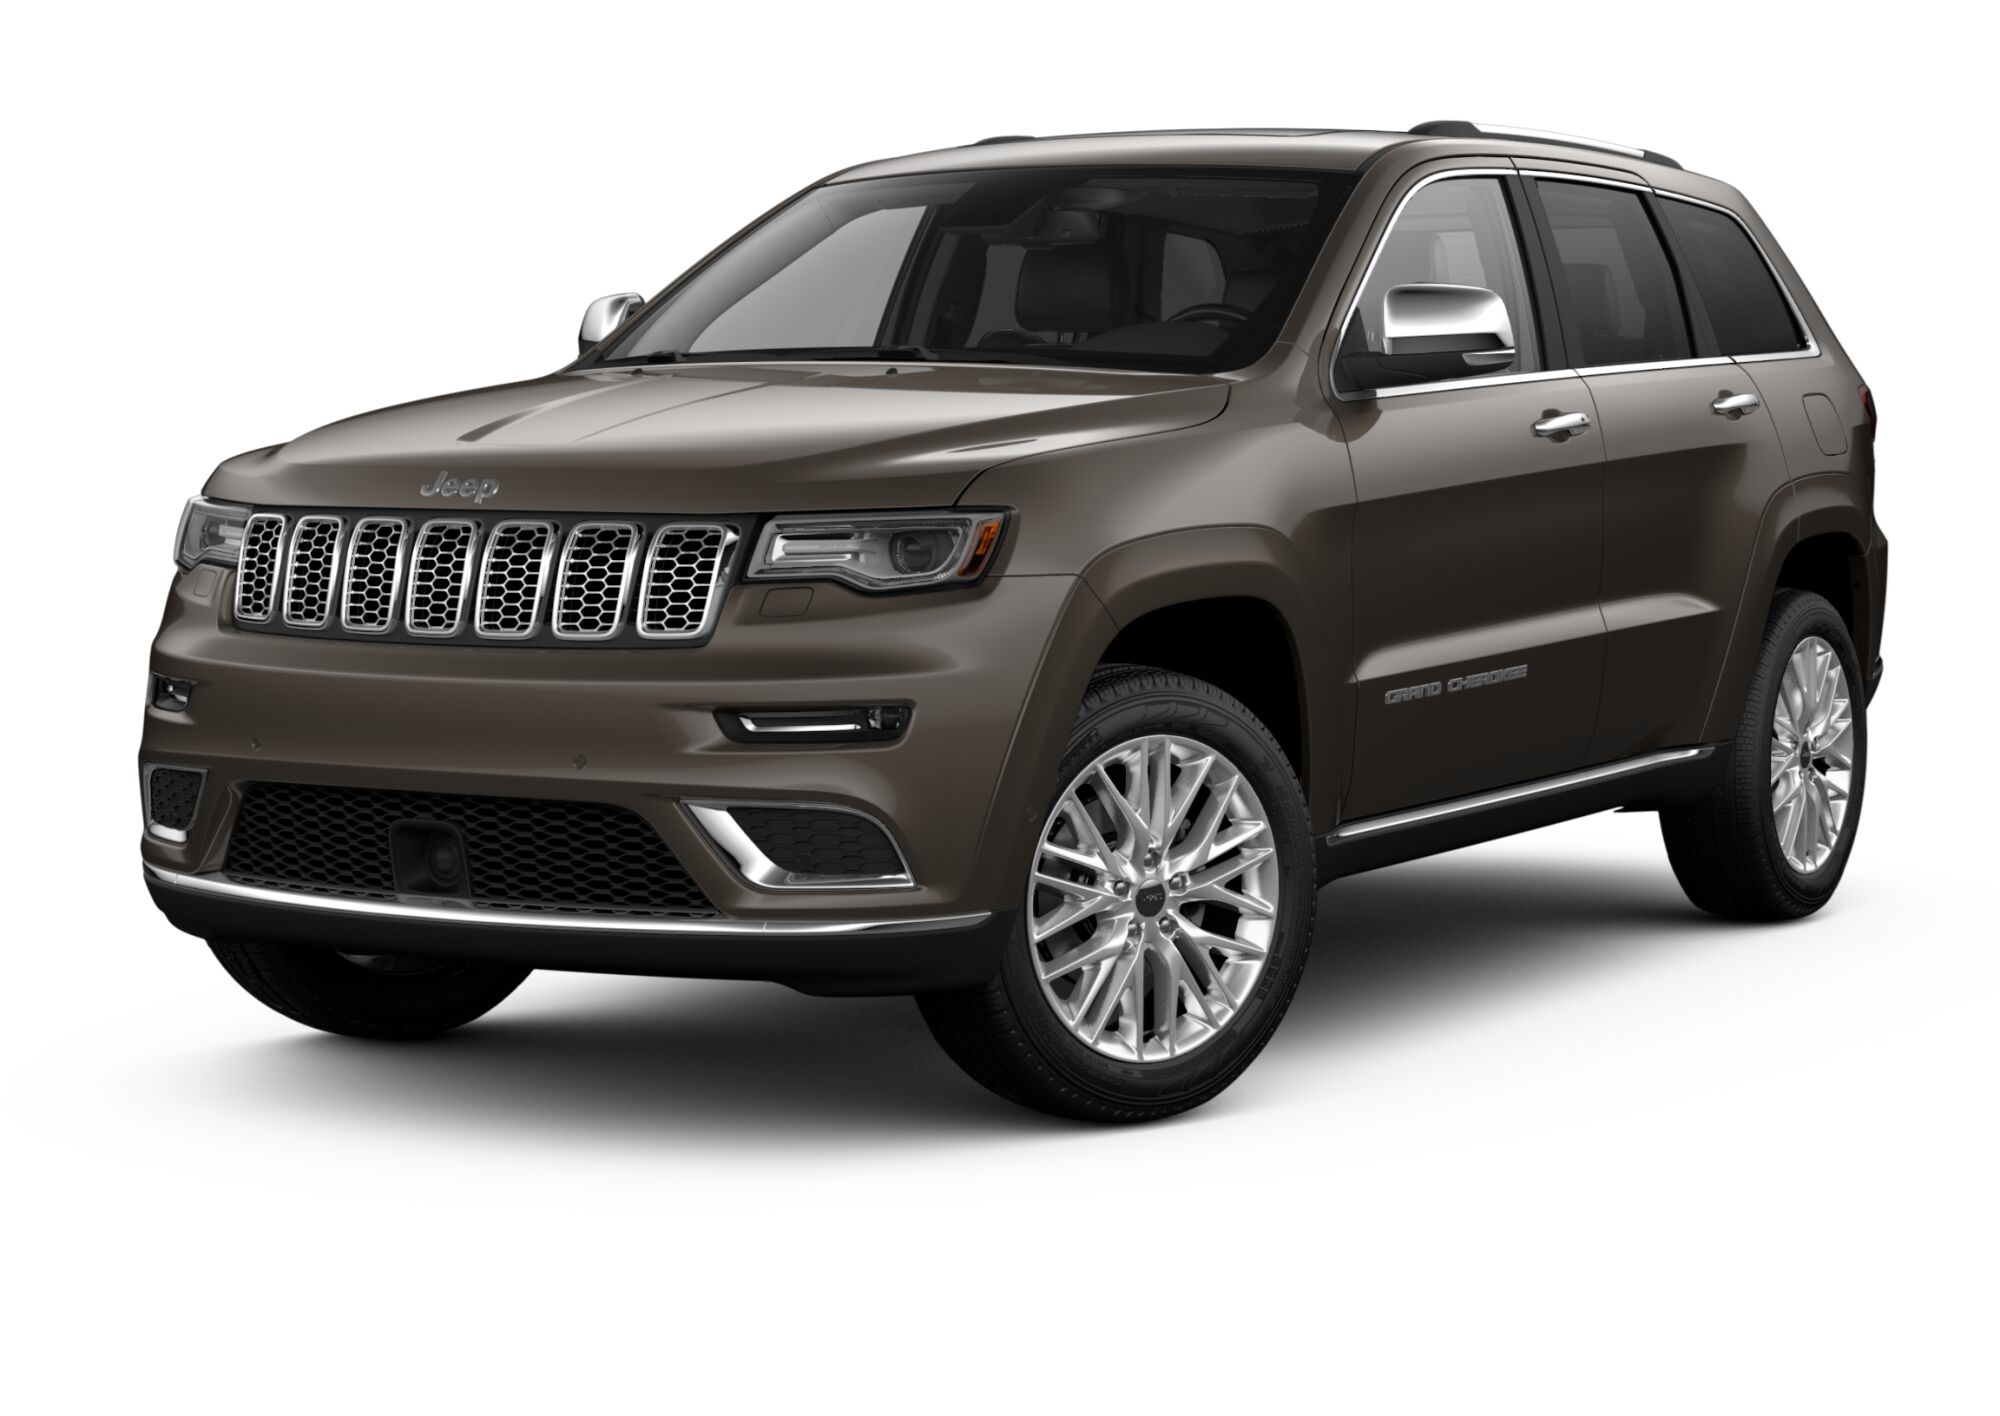 2019 Jeep Grand Cherokee Altitude Full Specs Features And Price